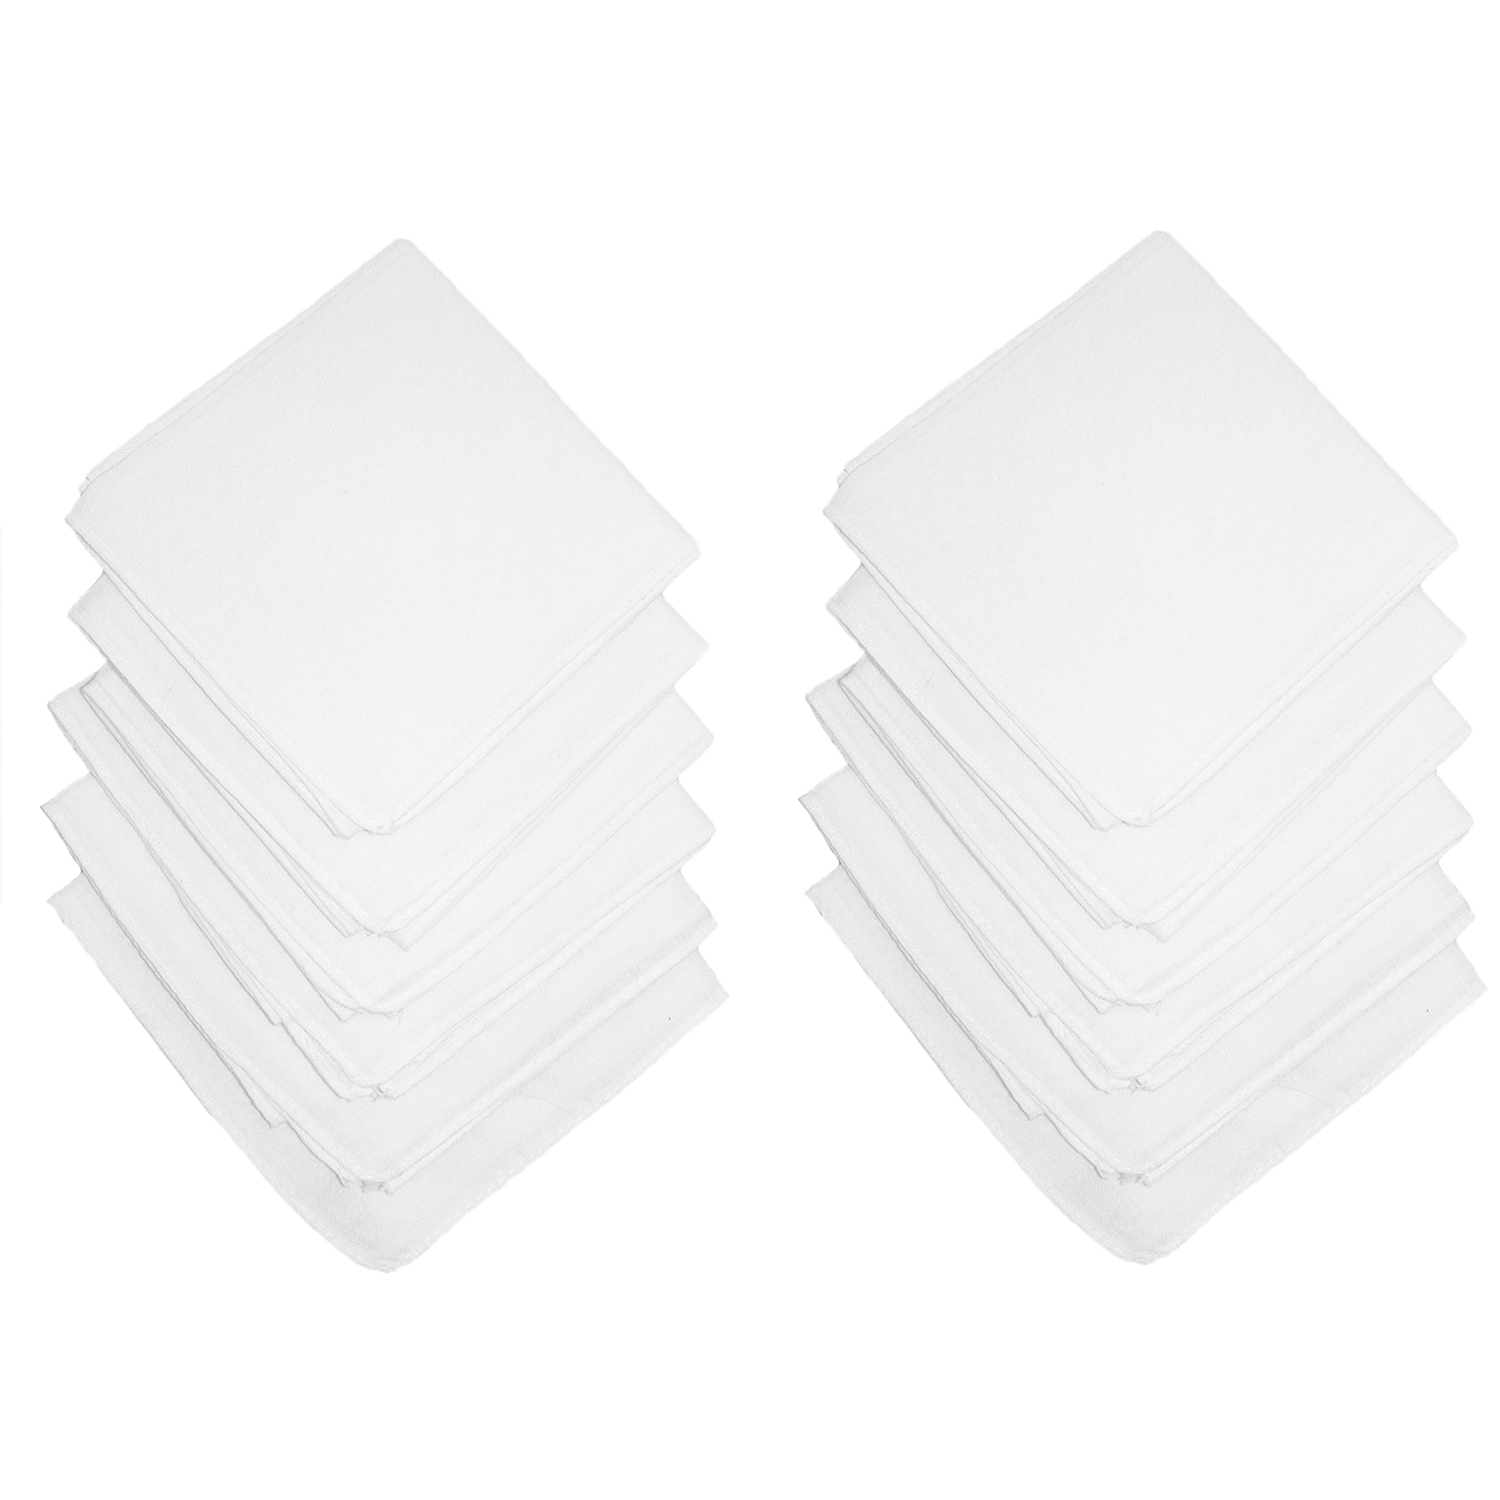 Axxents Cotton White Handkerchiefs (Pack of 12)White